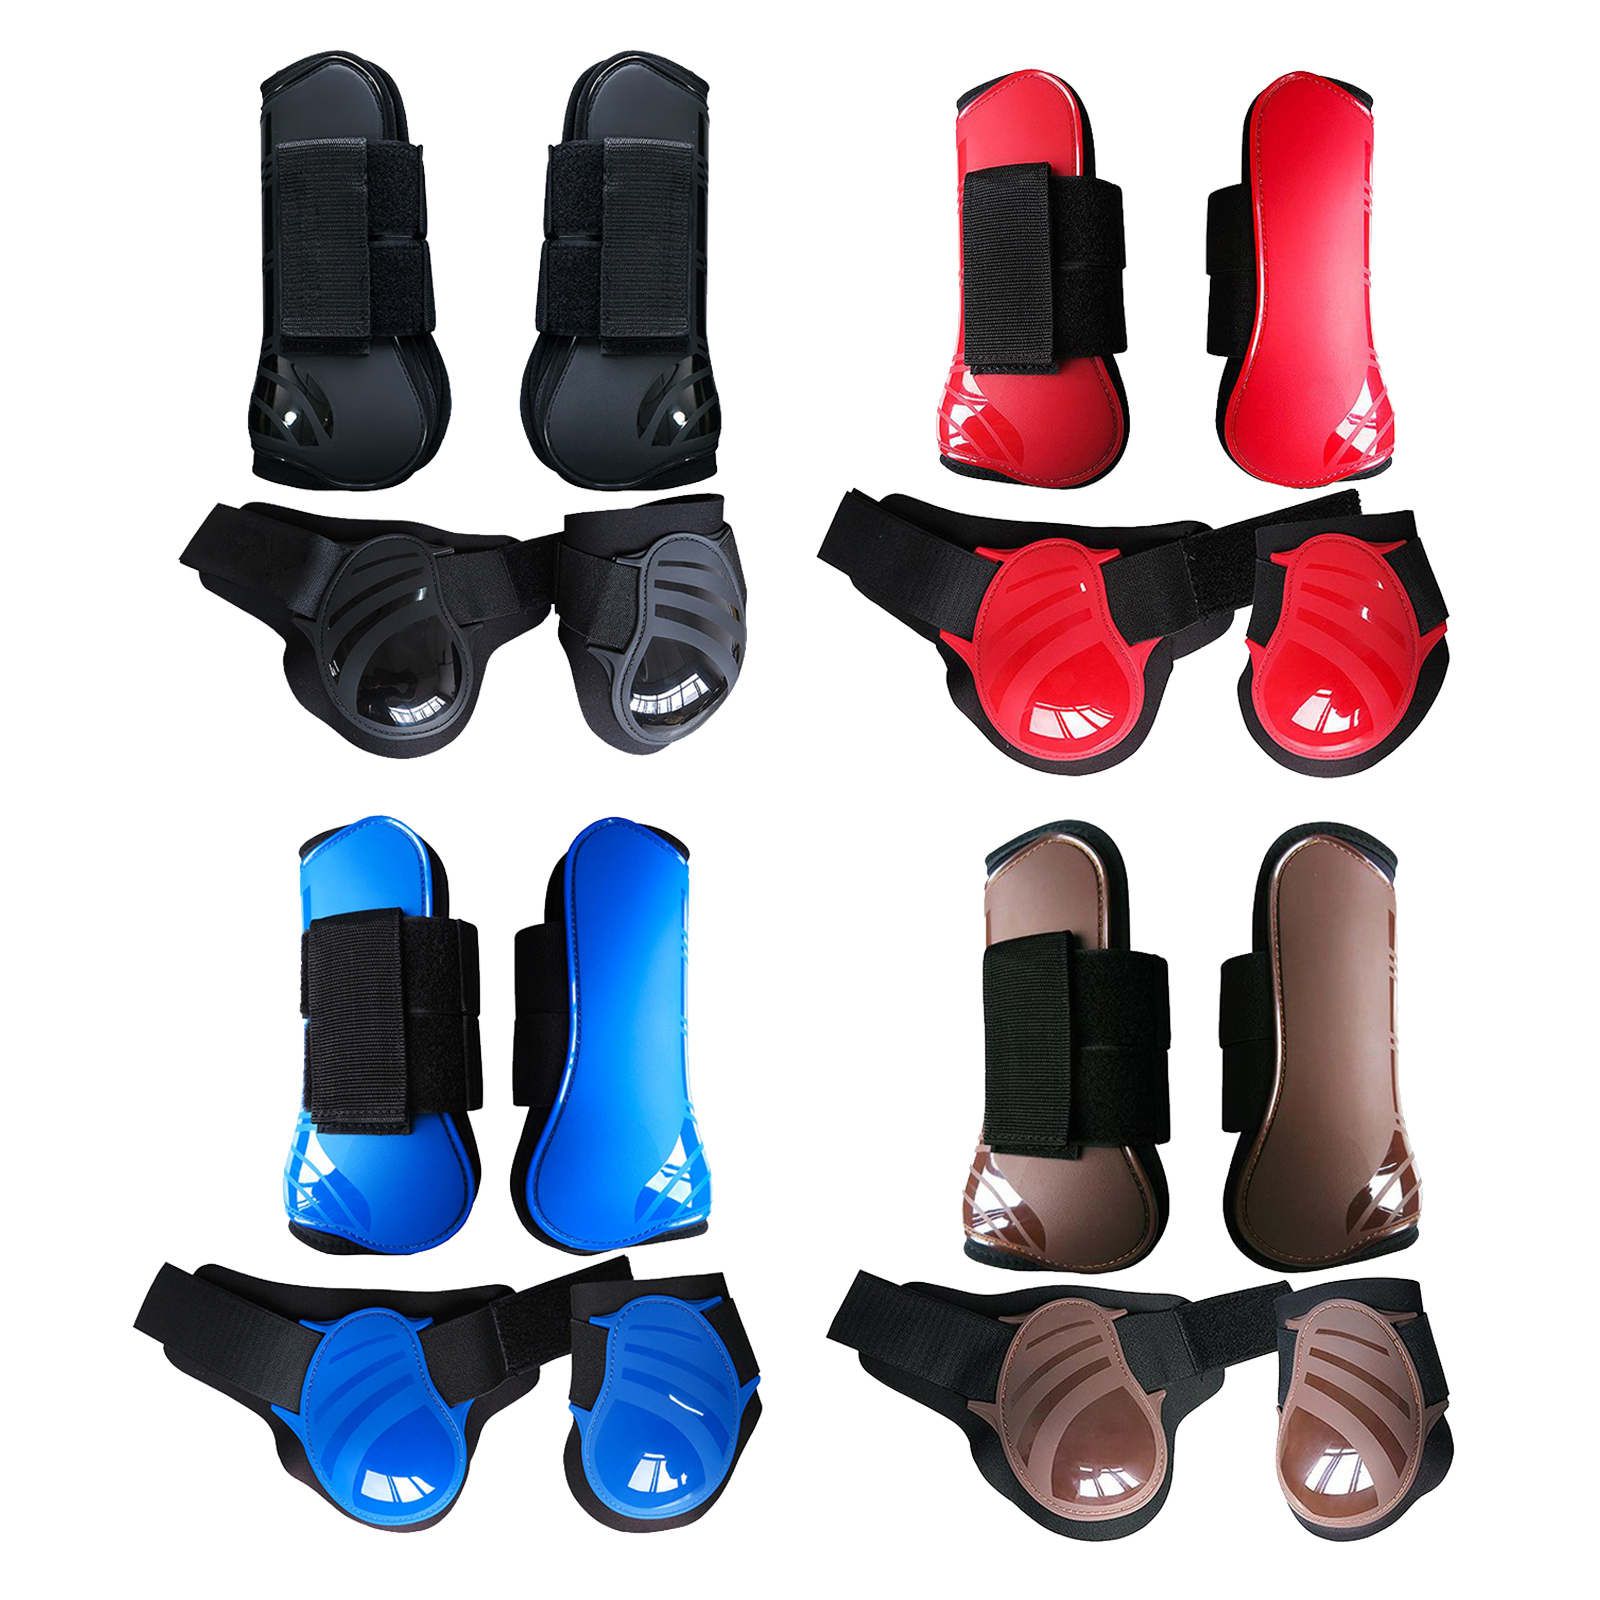 2 Pairs Horse Leg Guard Boots Front Hind Leg Tendon Protect Equestrian for Riding Training, PU Shell and High-Quality Neoprene